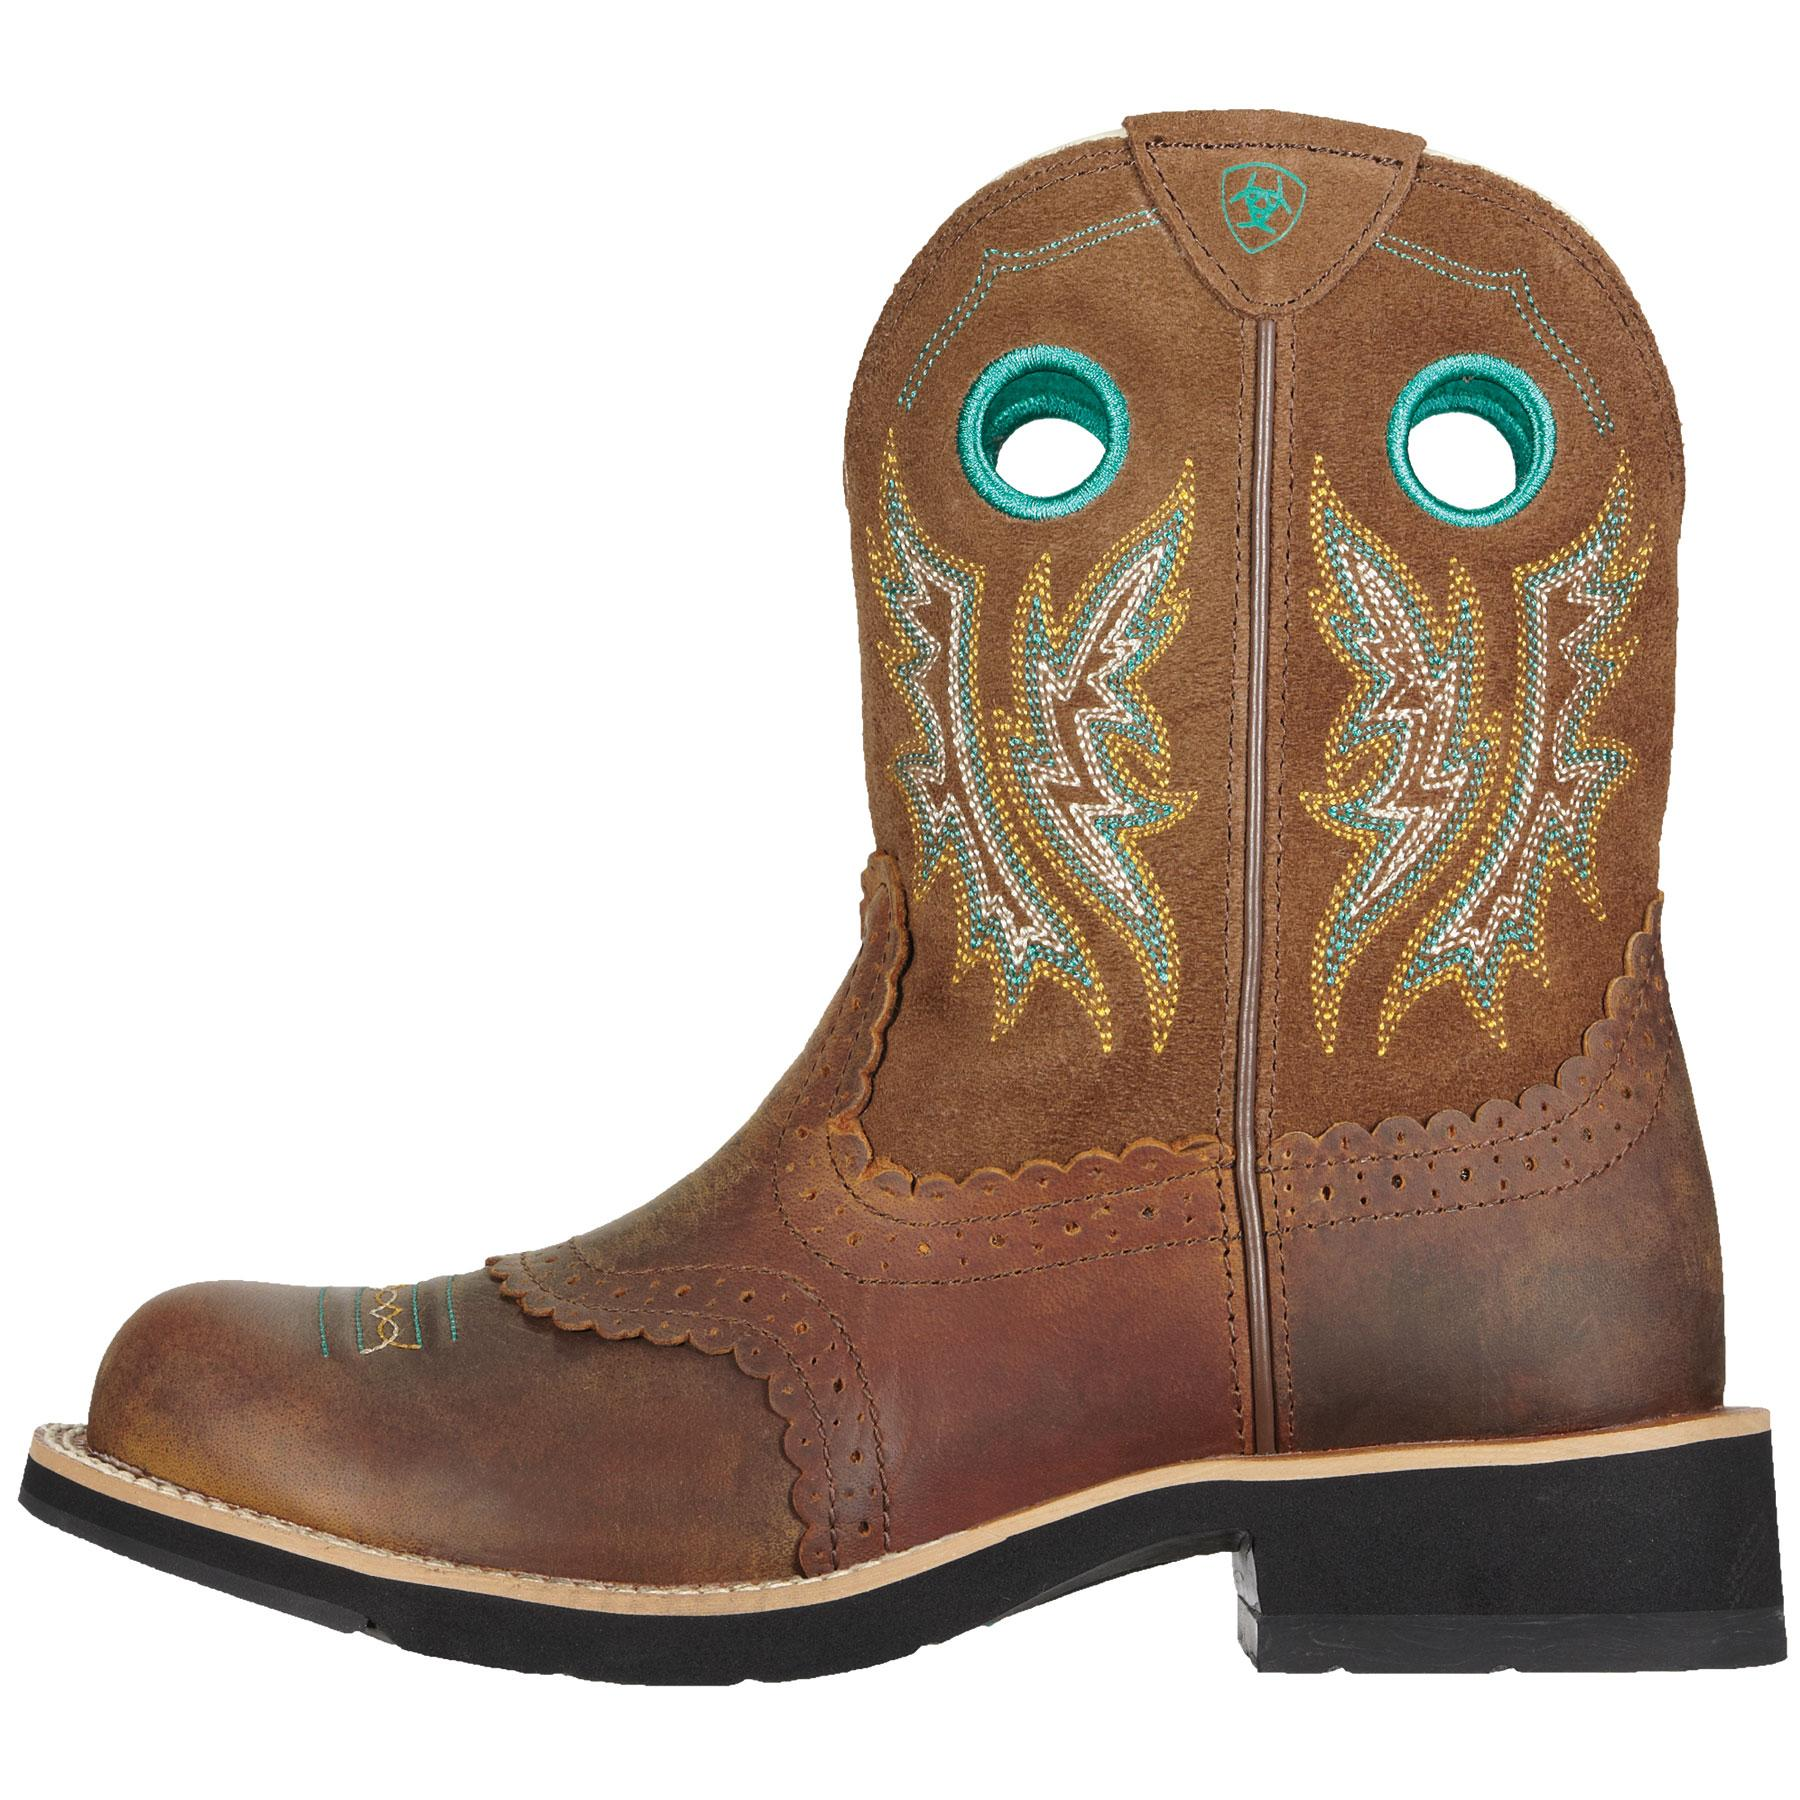 Ariat Fatbaby Cowgirl Boots m4TlYXer